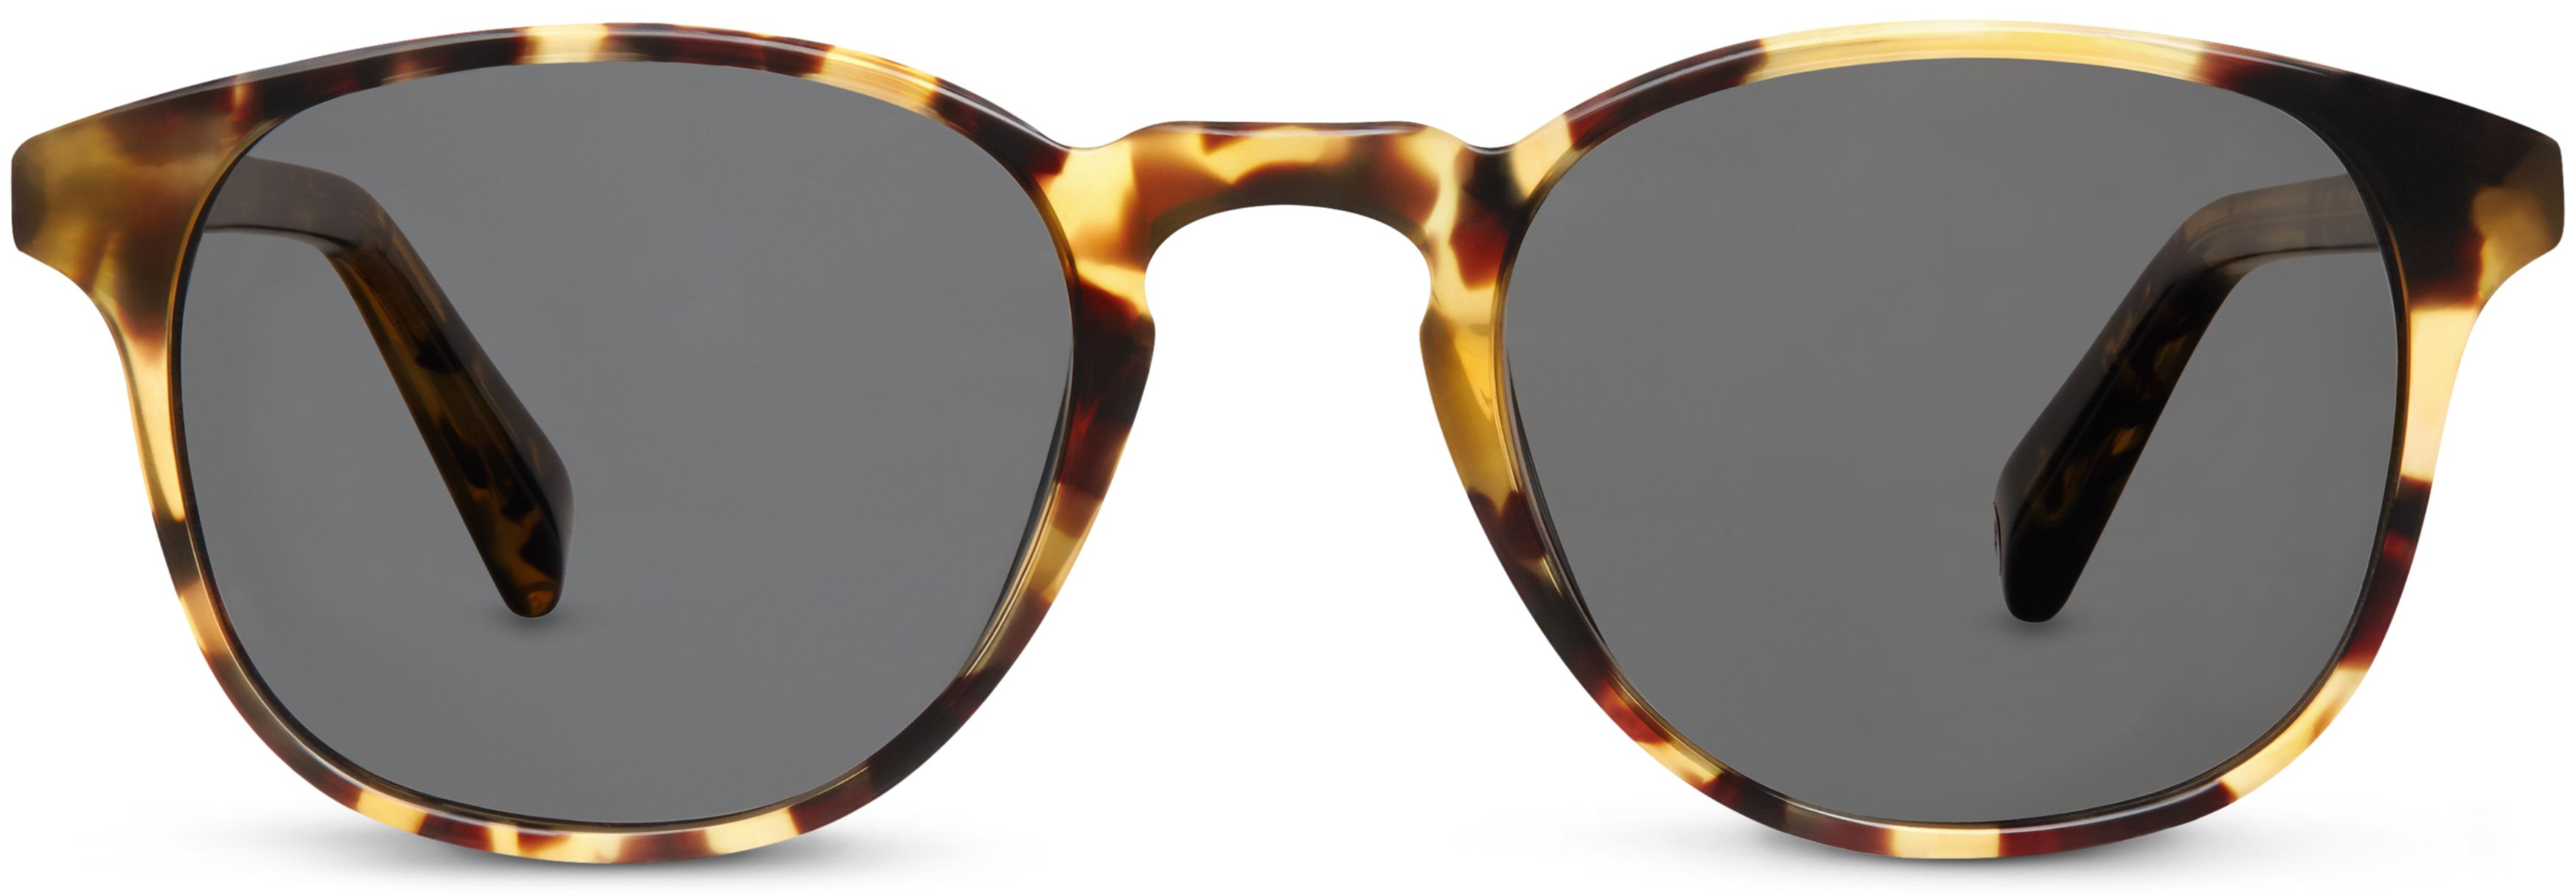 0164162adf4 Downing Sunglasses in Walnut Tortoise with Classic Grey lenses for Men